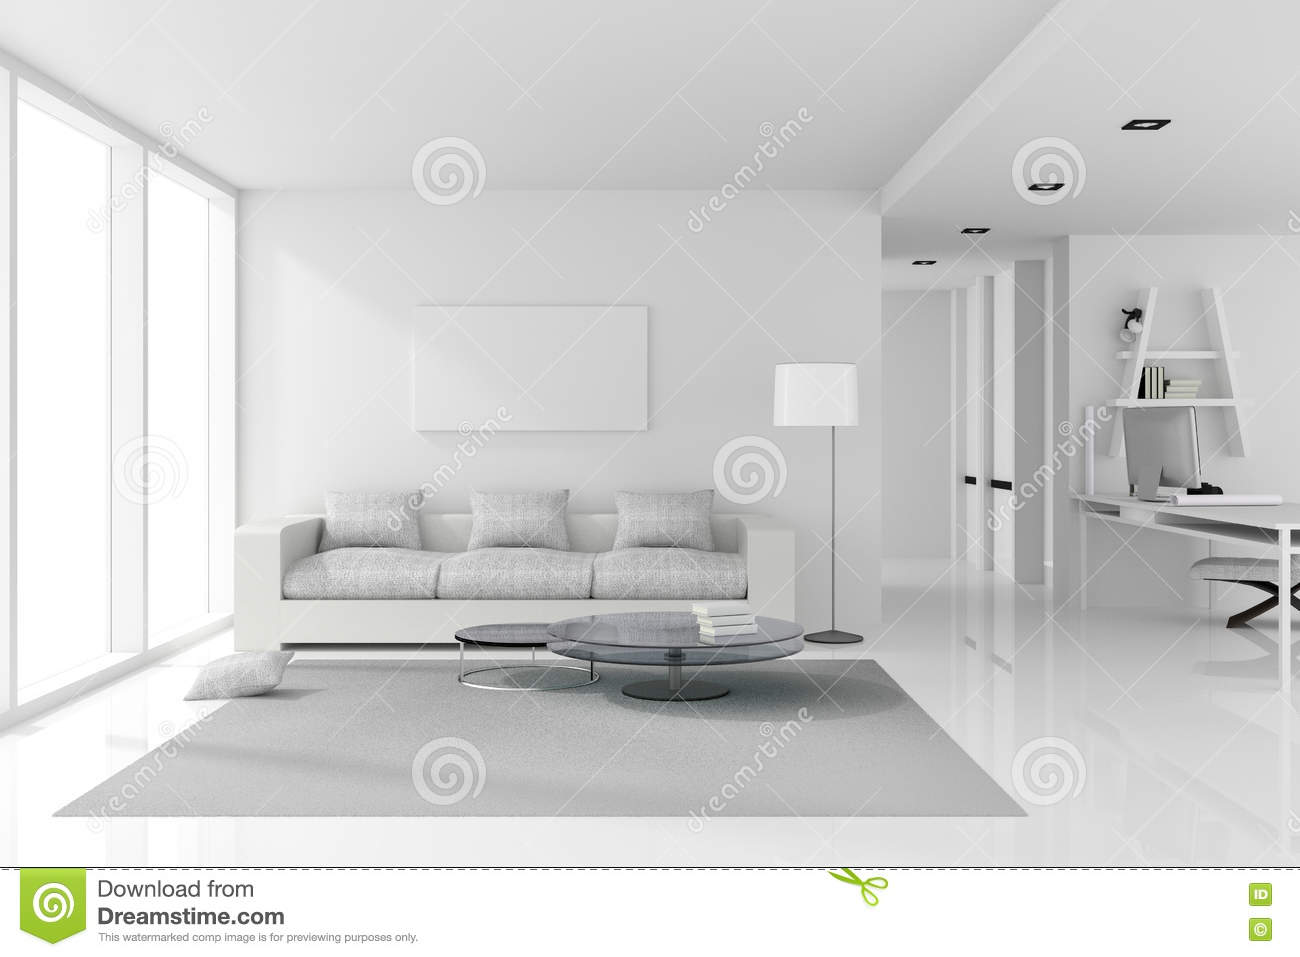 3d Rendering Illustration Of White Interior Design Of